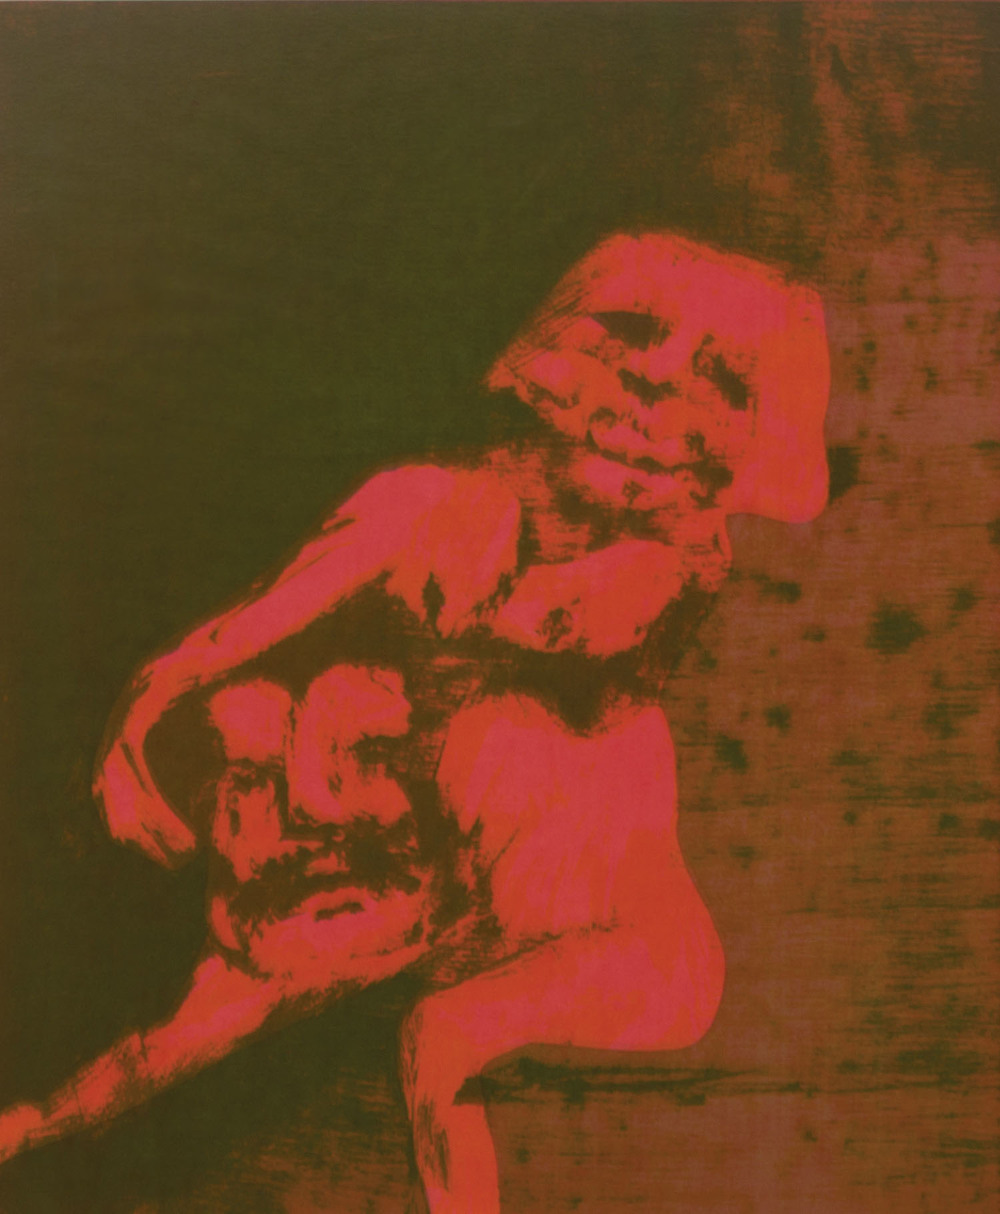 Sidney-Nolan_-_After-Robert-Lowell_screenprint-(22-of-70)_57.5-x-46-cm_€-3200.jpg